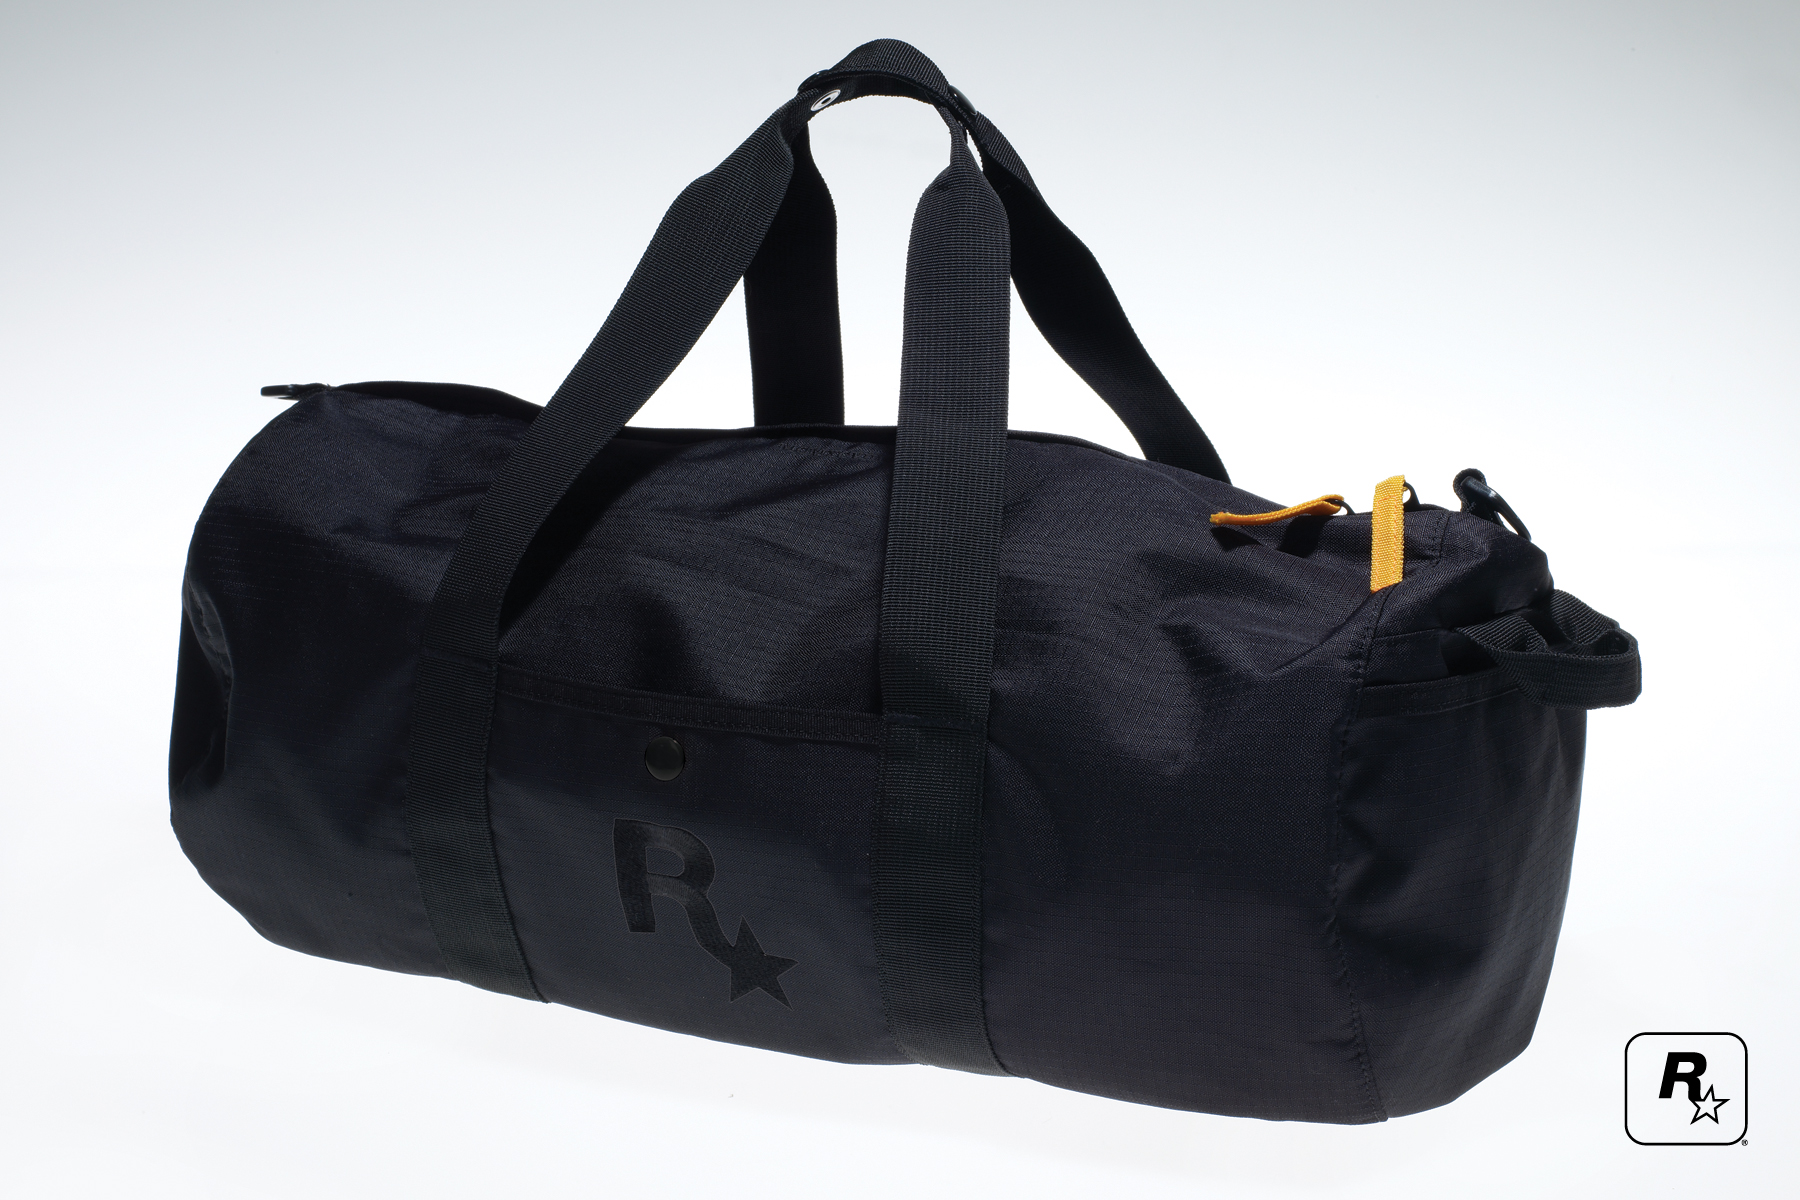 duffel_bag.jpg